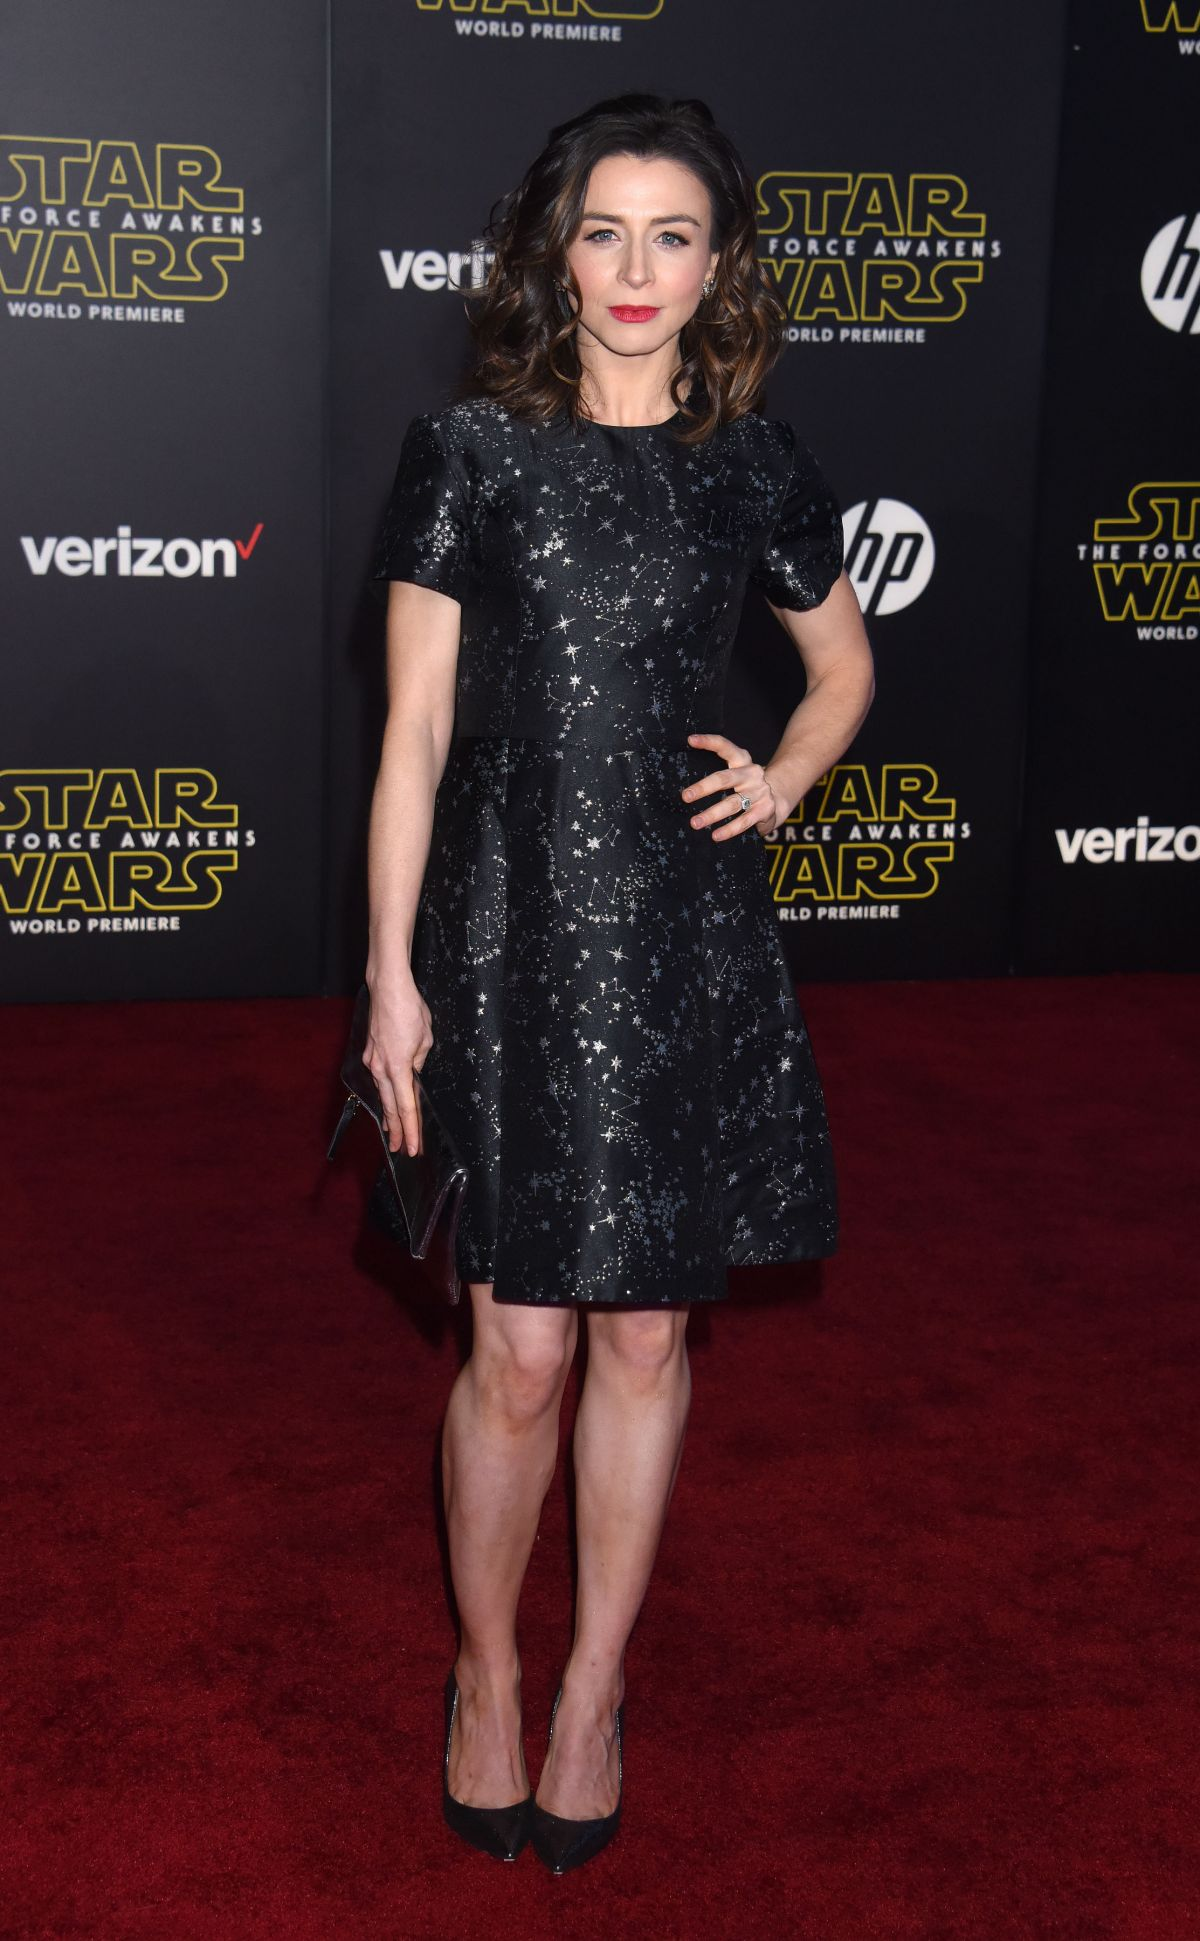 CATERINA SCORSONE at Star Wars: Episode VII – The Force Awakens Premiere in Hollywood 12/14/2015